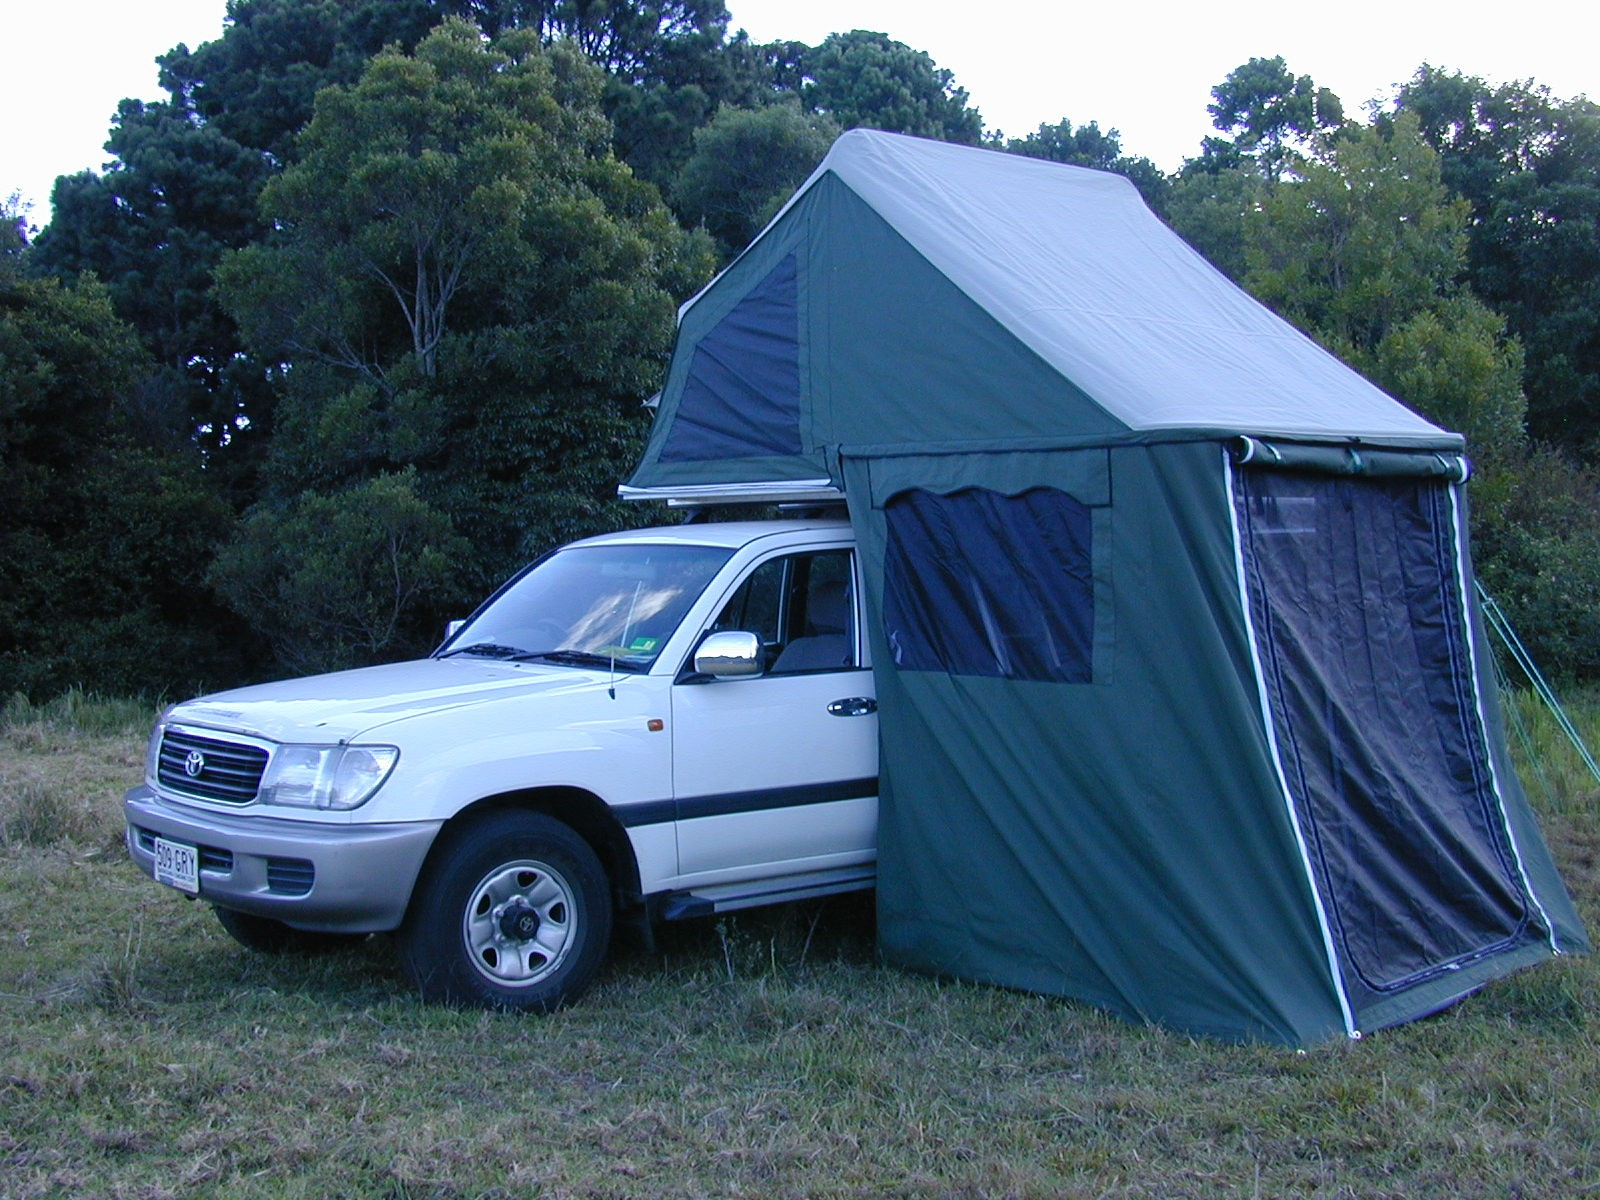 Mobile Room Roof-top Tent- Deluxe & Jeffs Shed - Mobile Room Roof-top Tent- Deluxe - Aussie Traveller ...